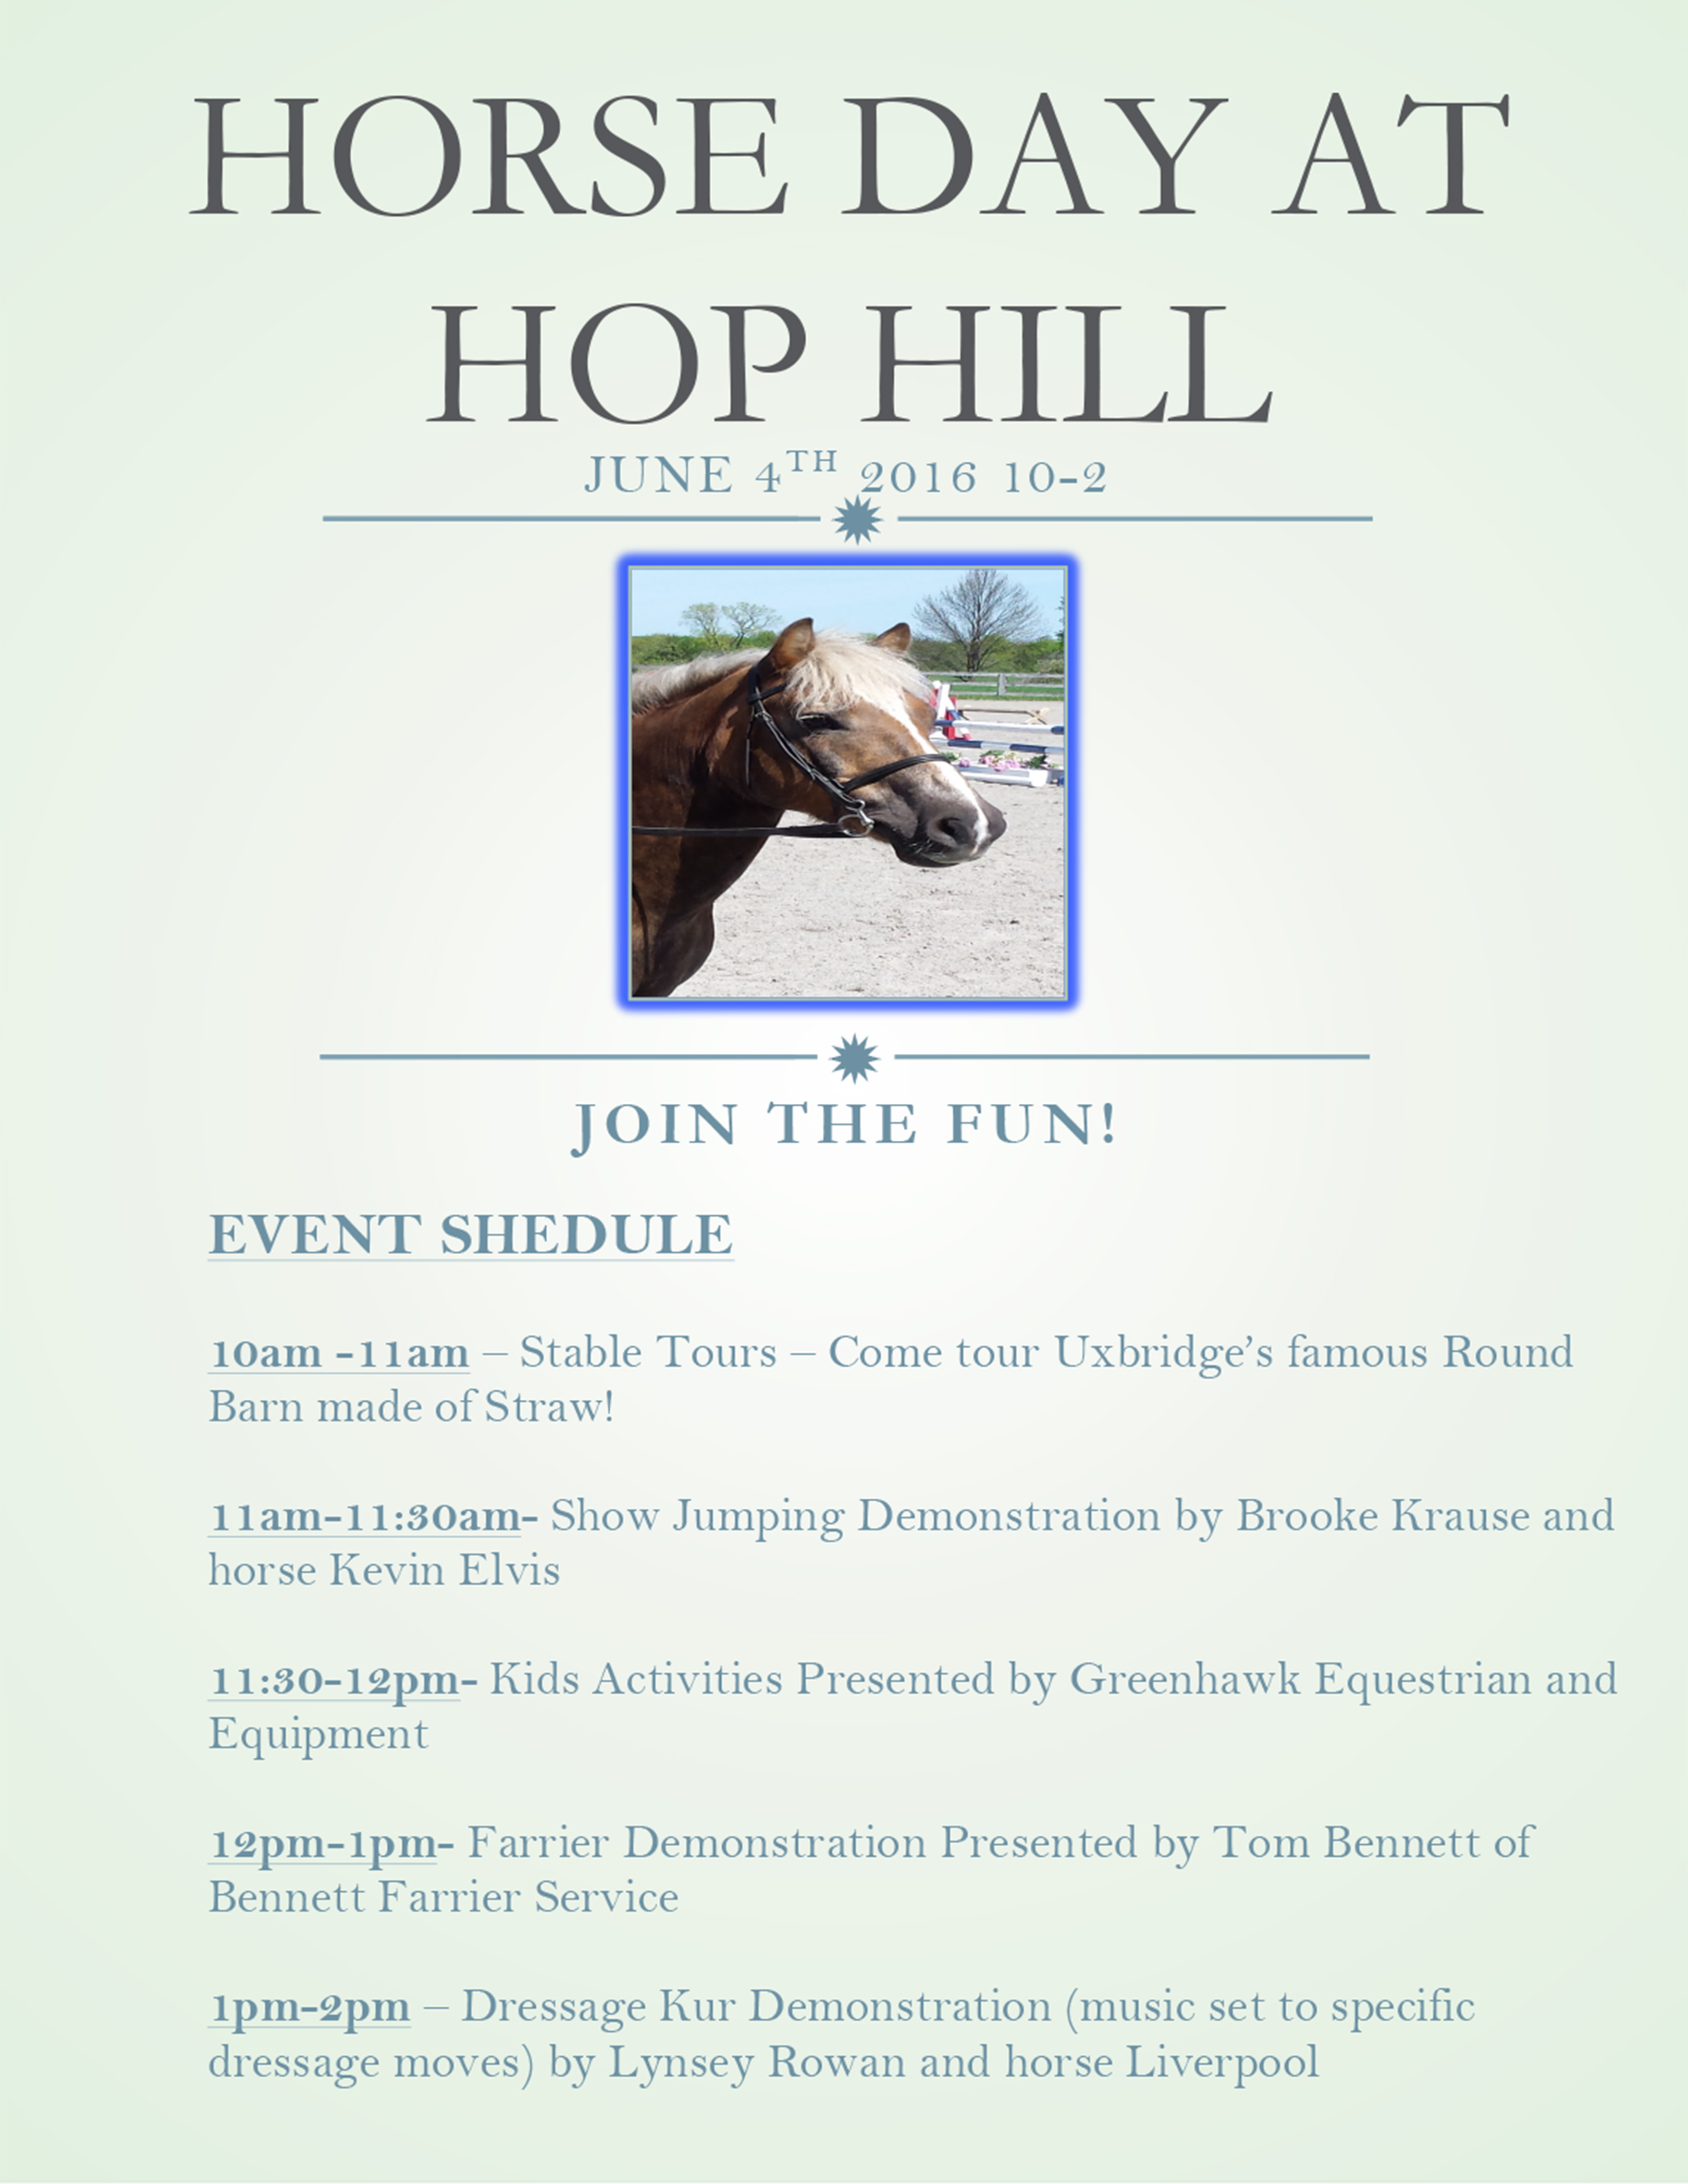 Hop Hill Stables